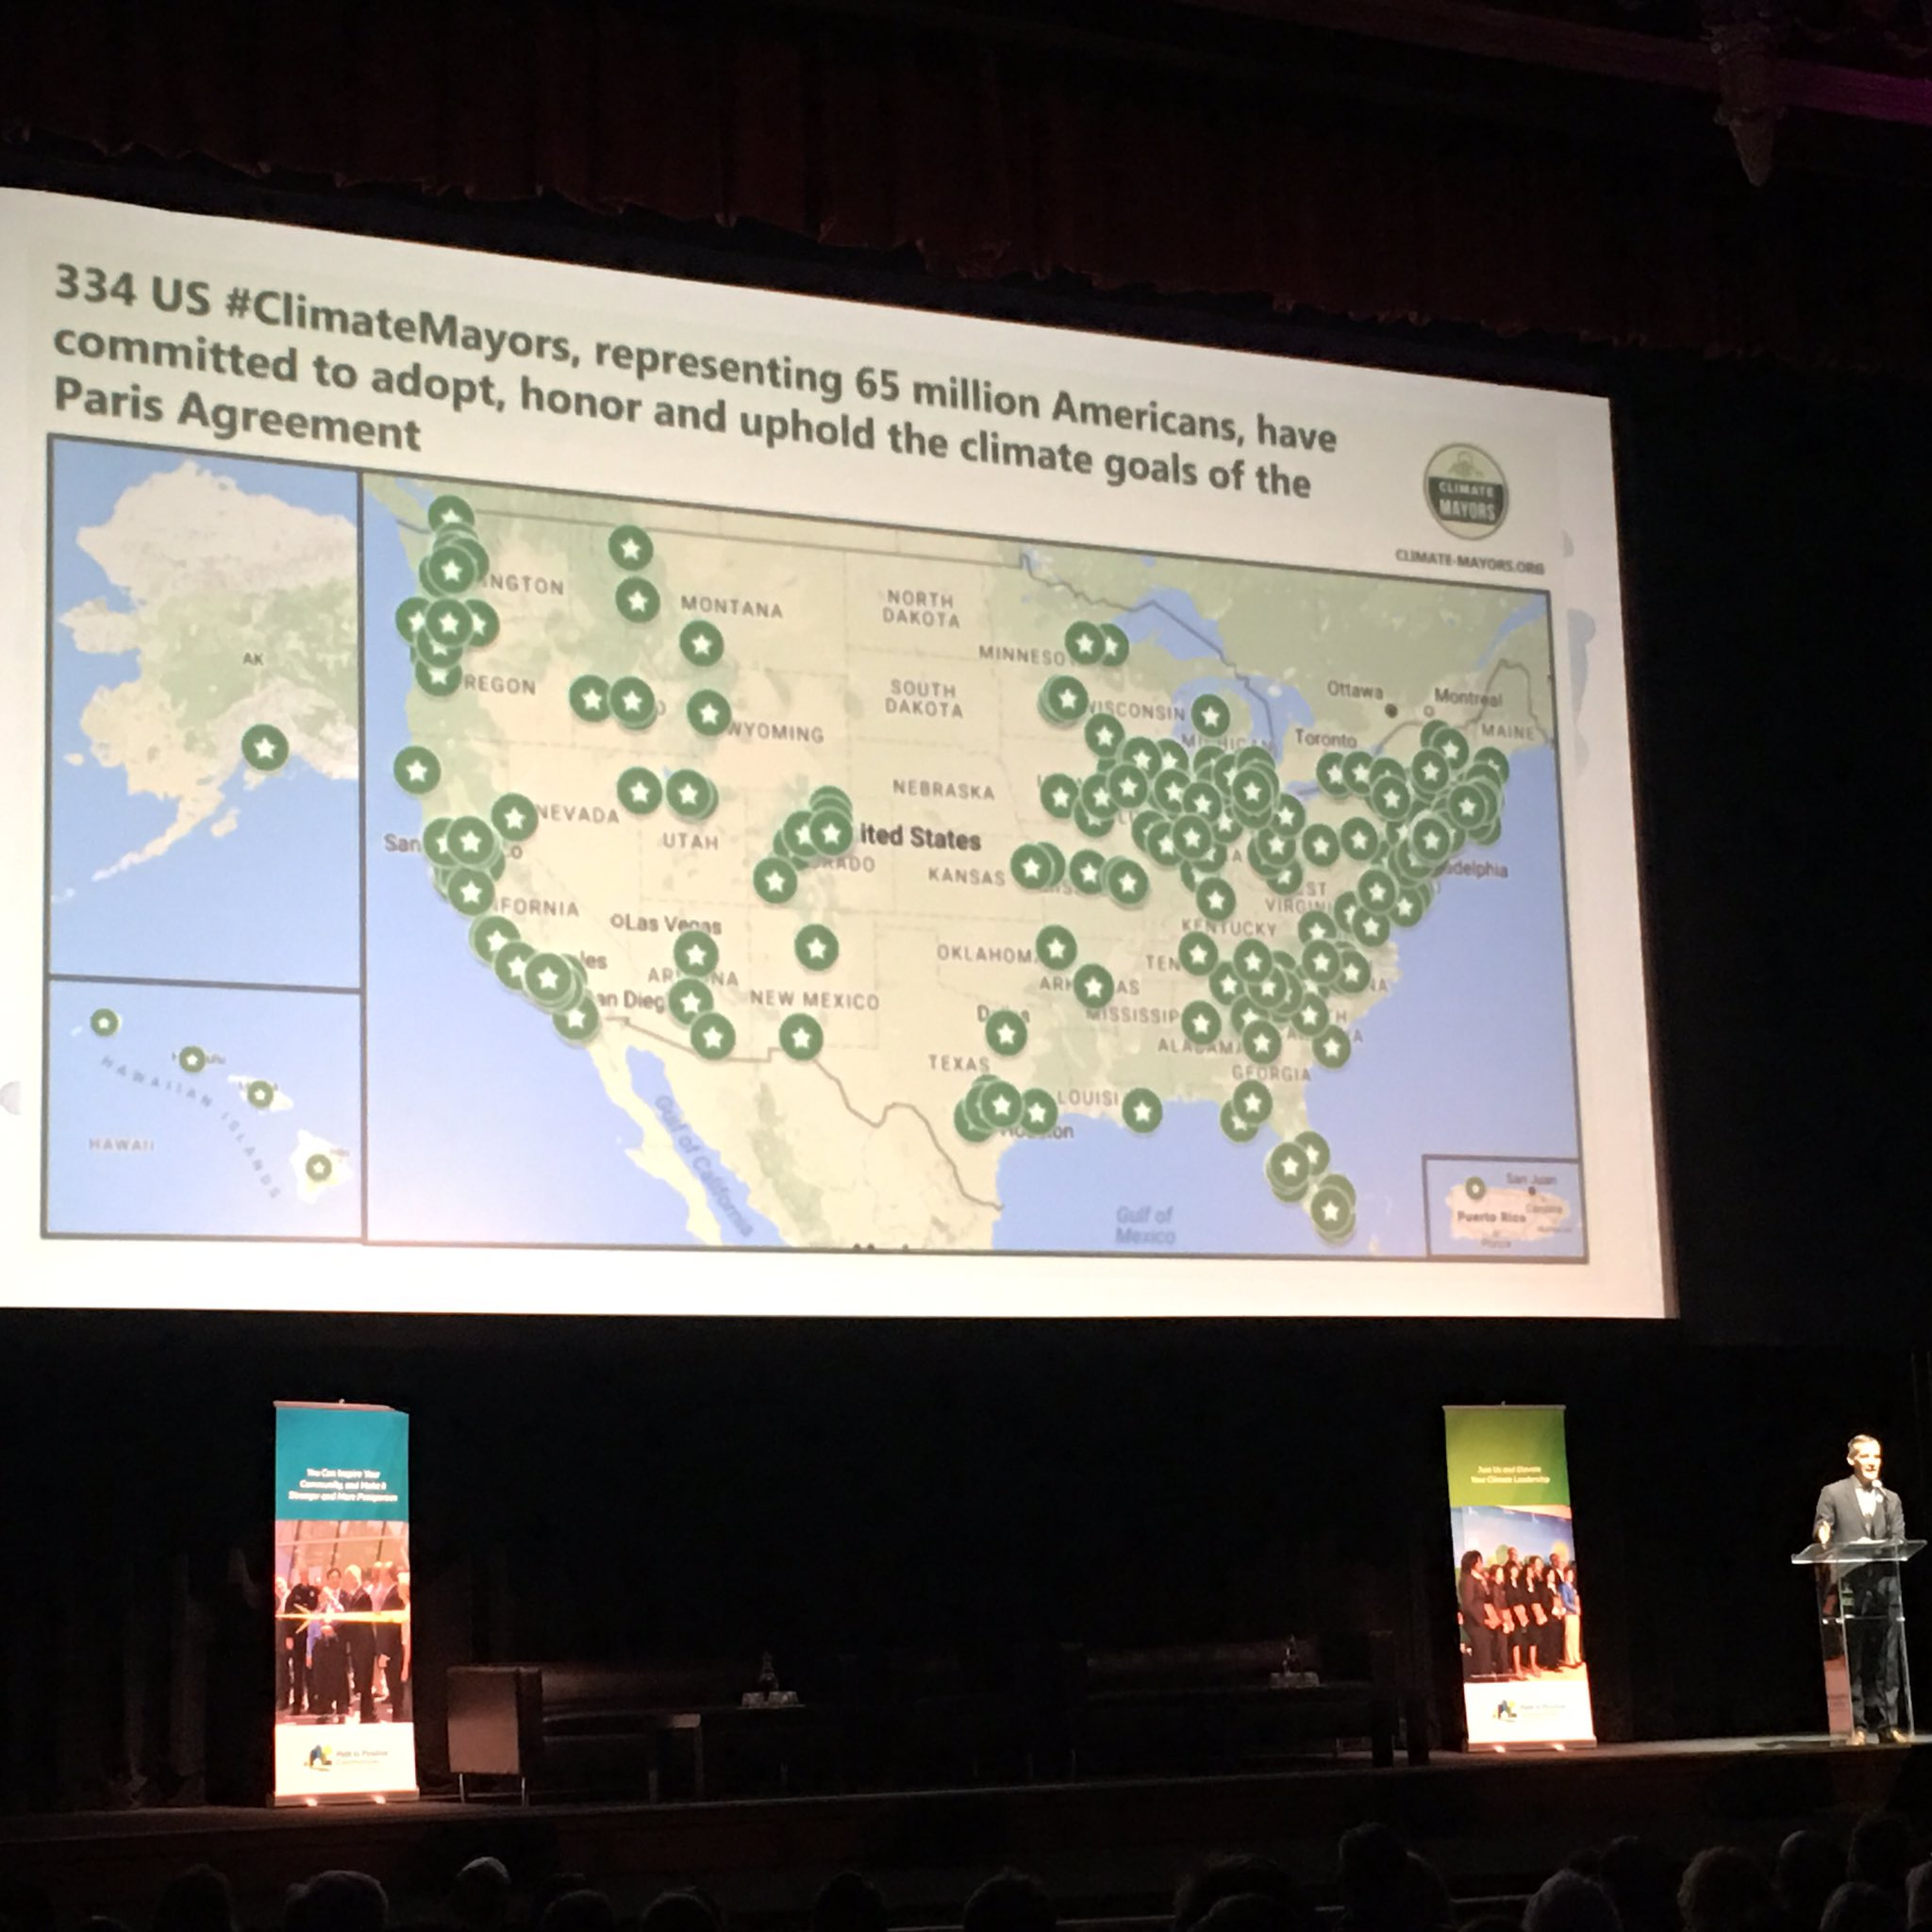 .@MayorOfLA highlights that 334 US #ClimateMayors have committed to adopt + uphold goals of the #ParisAgreement. Has yours? #ClimateDayLA https://t.co/jMXuF60Hxx